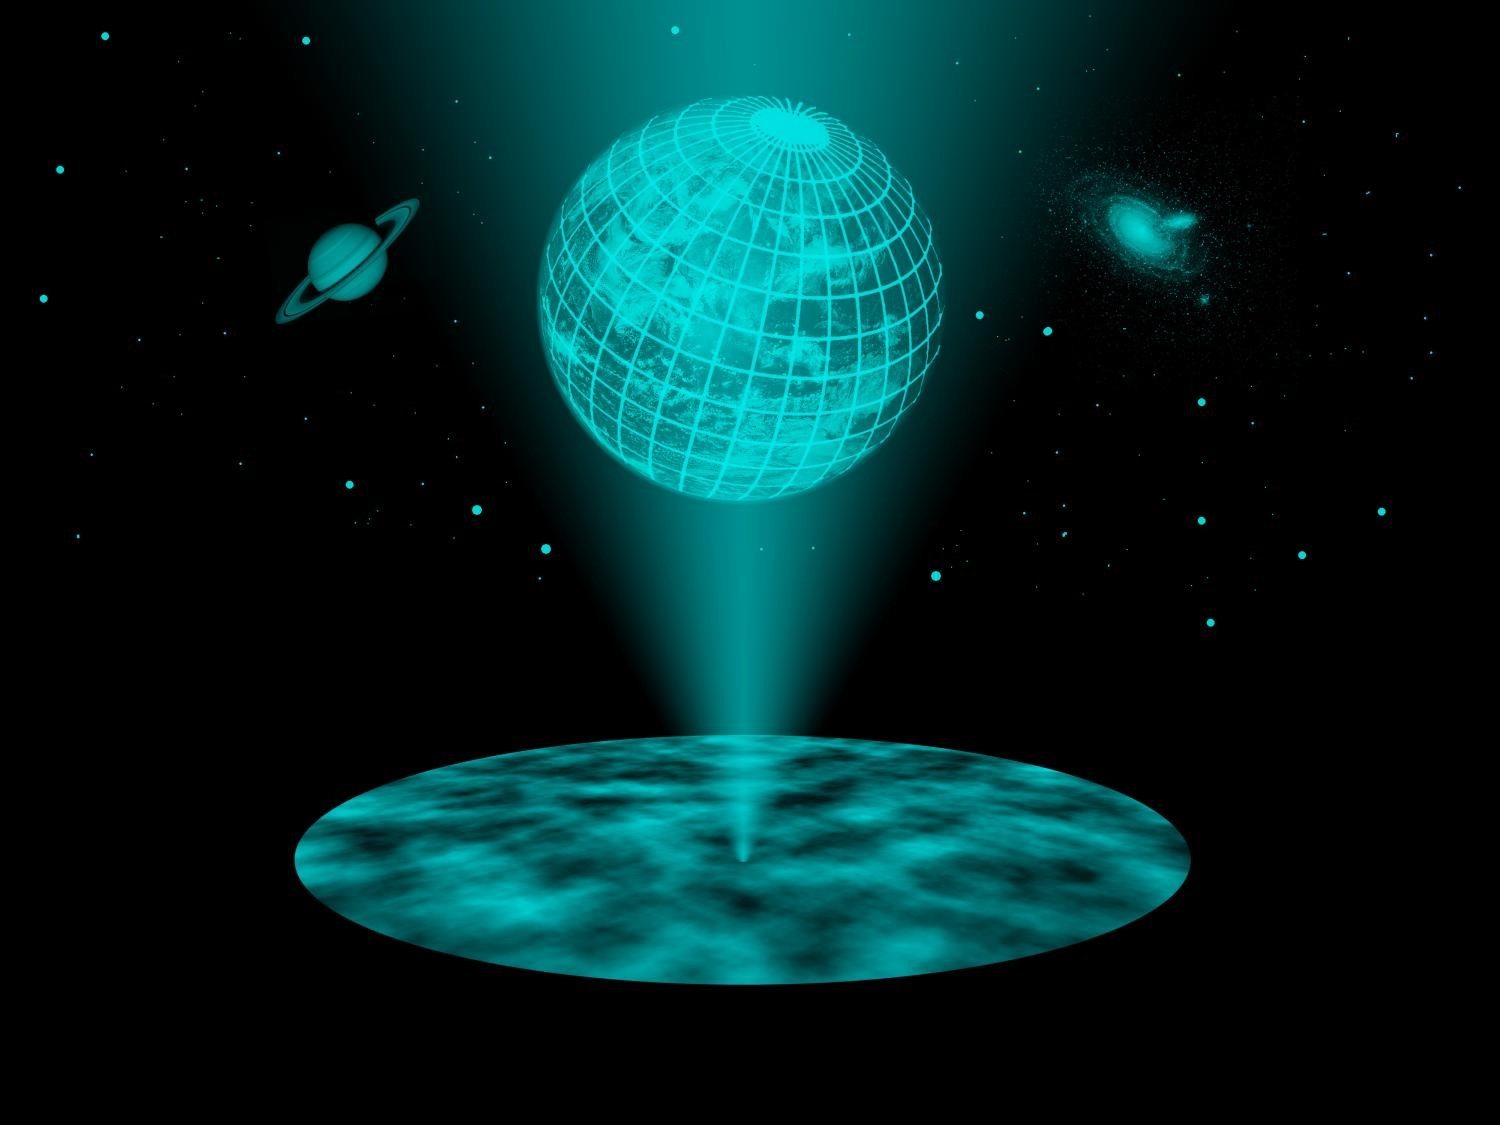 Is the universe a hologram?